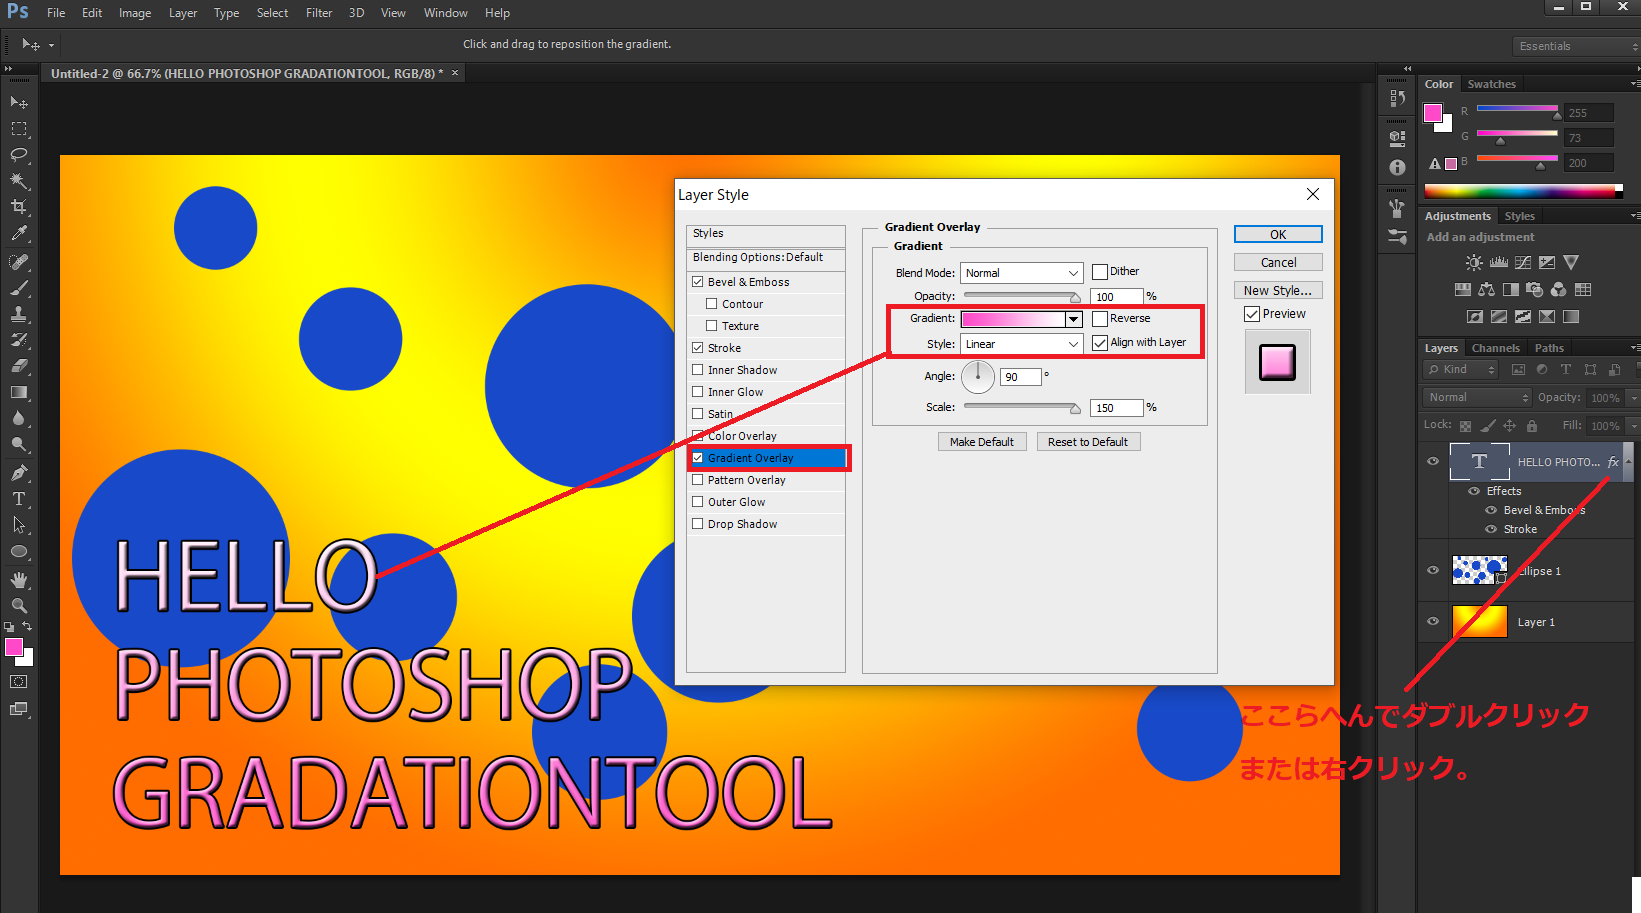 photoshop gradationtool(4)